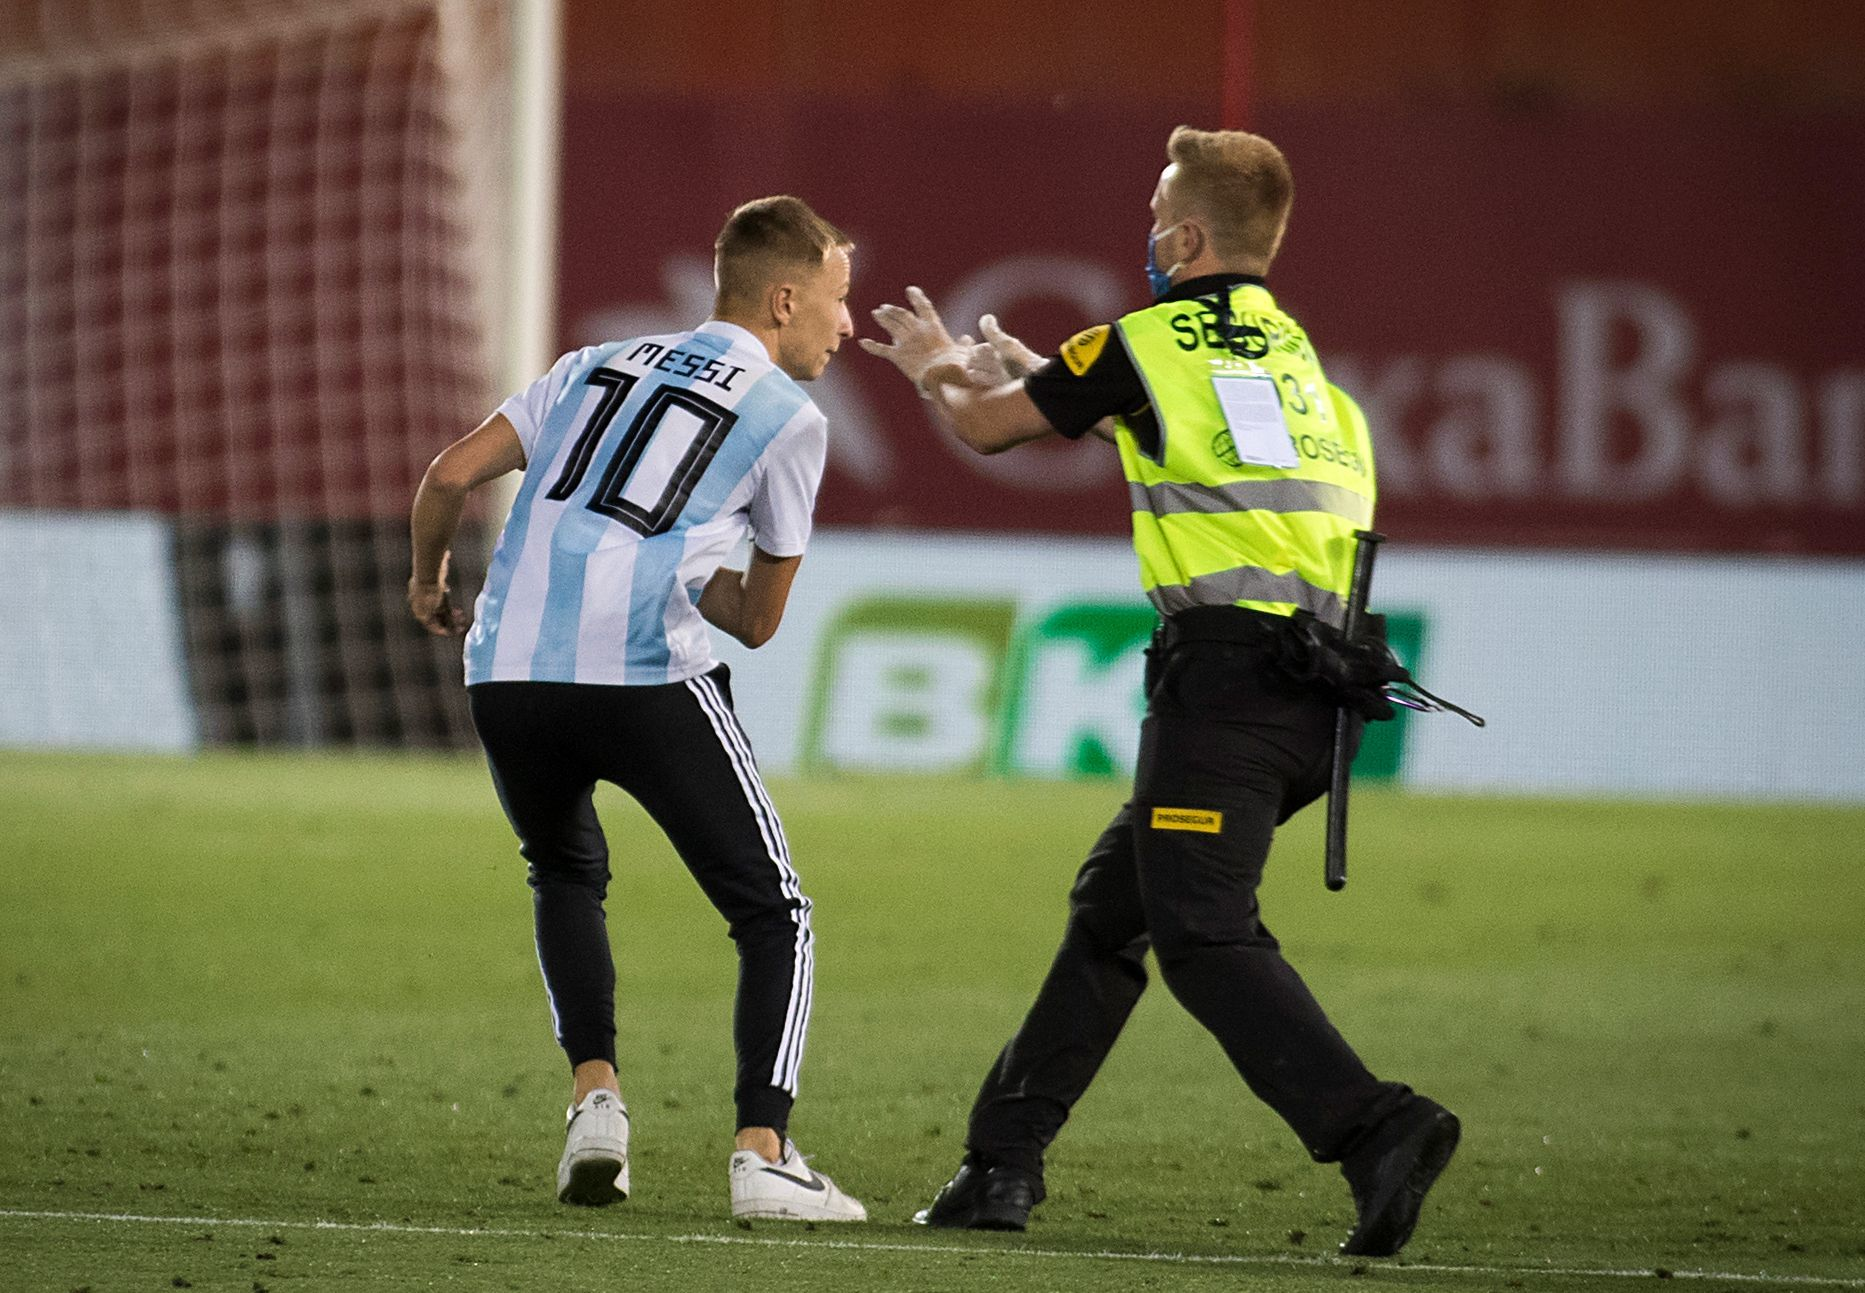 Mother of Mallorca pitch invader: He will work all summer to pay off the fine